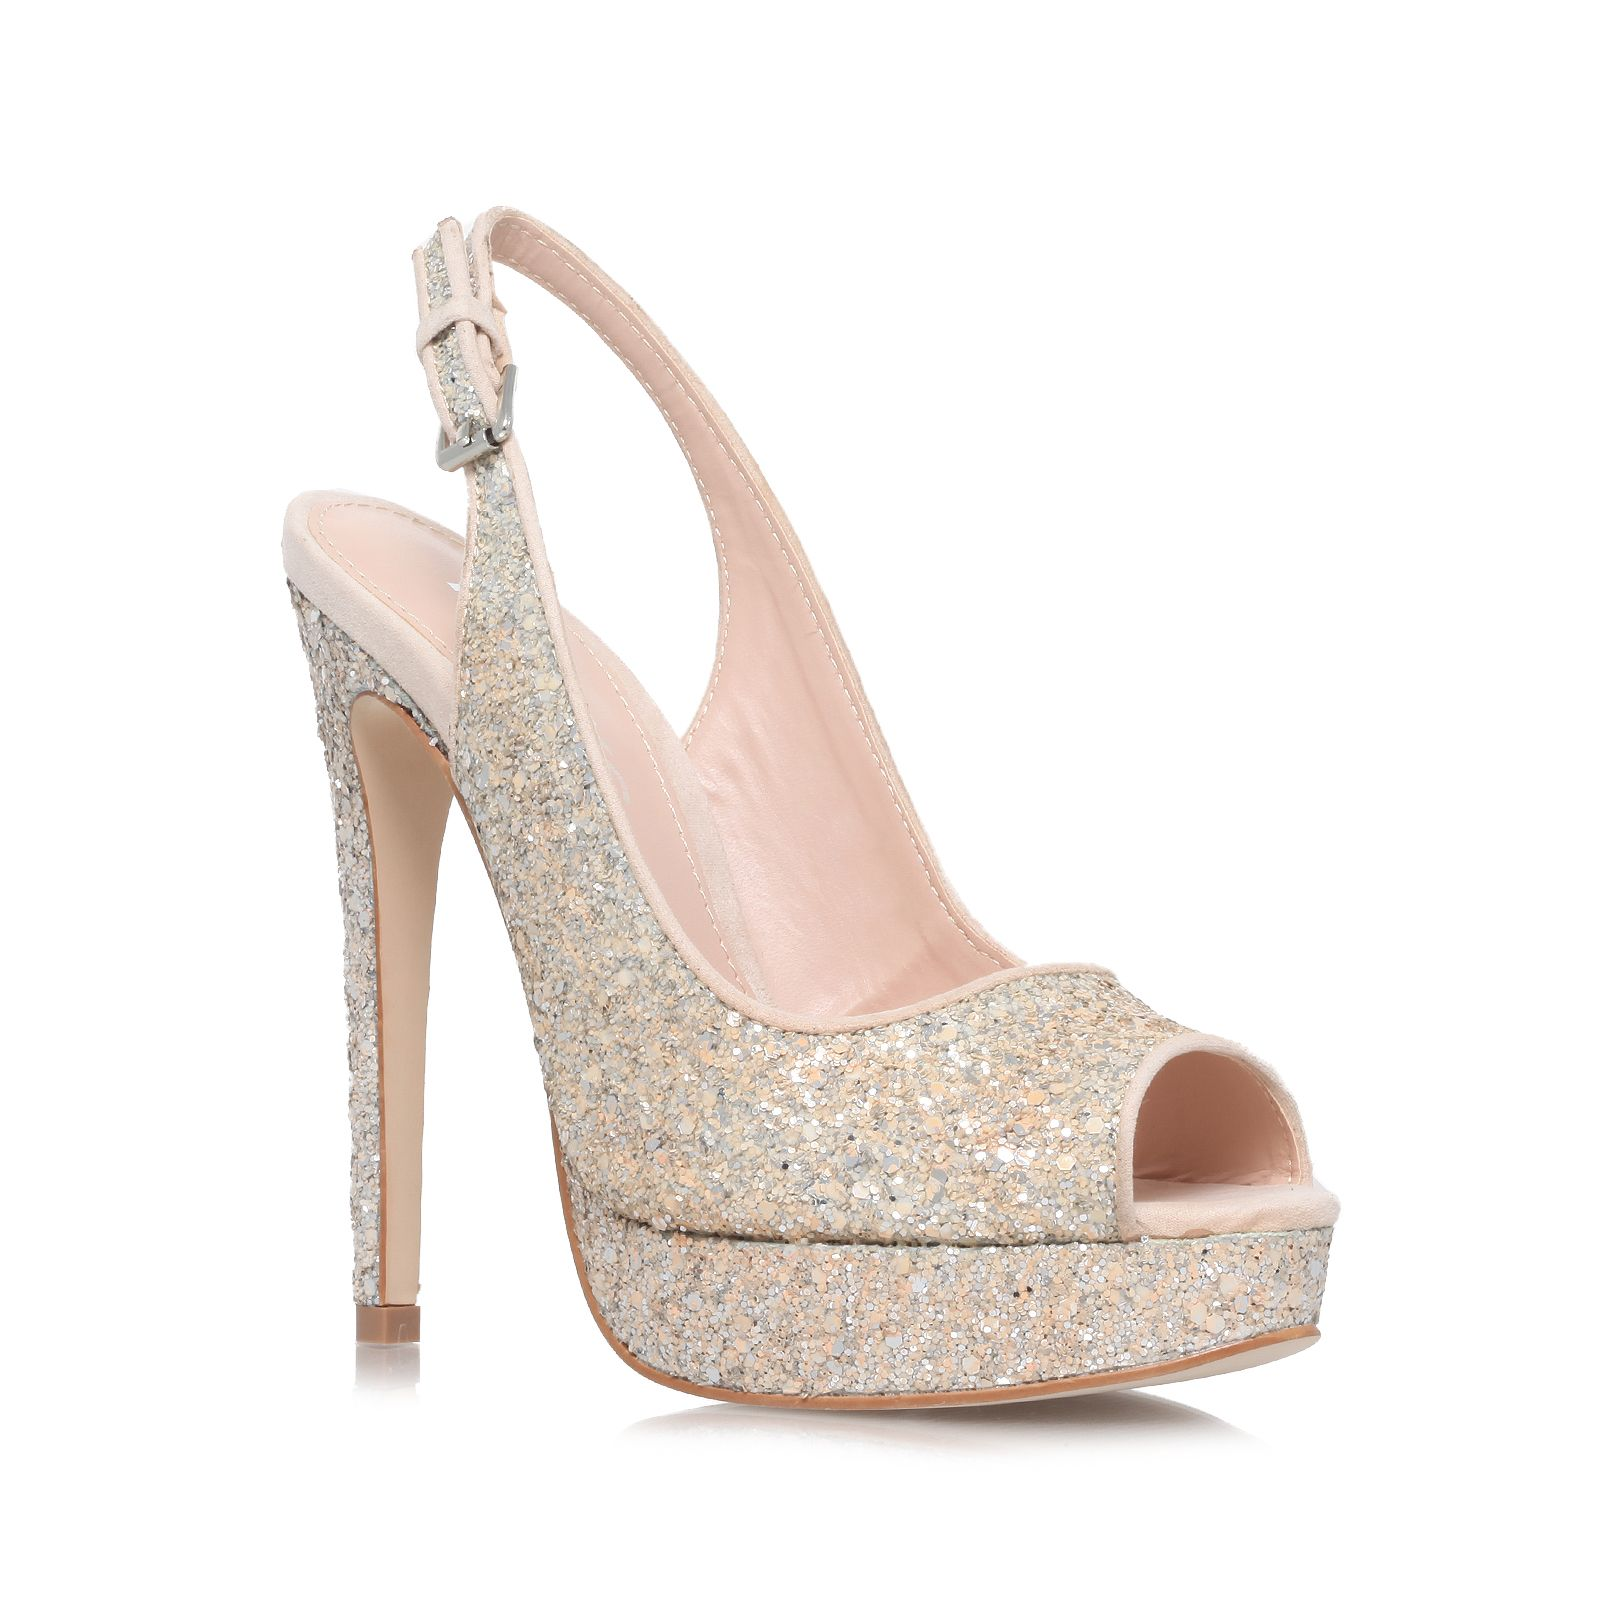 Esther high heel court shoes